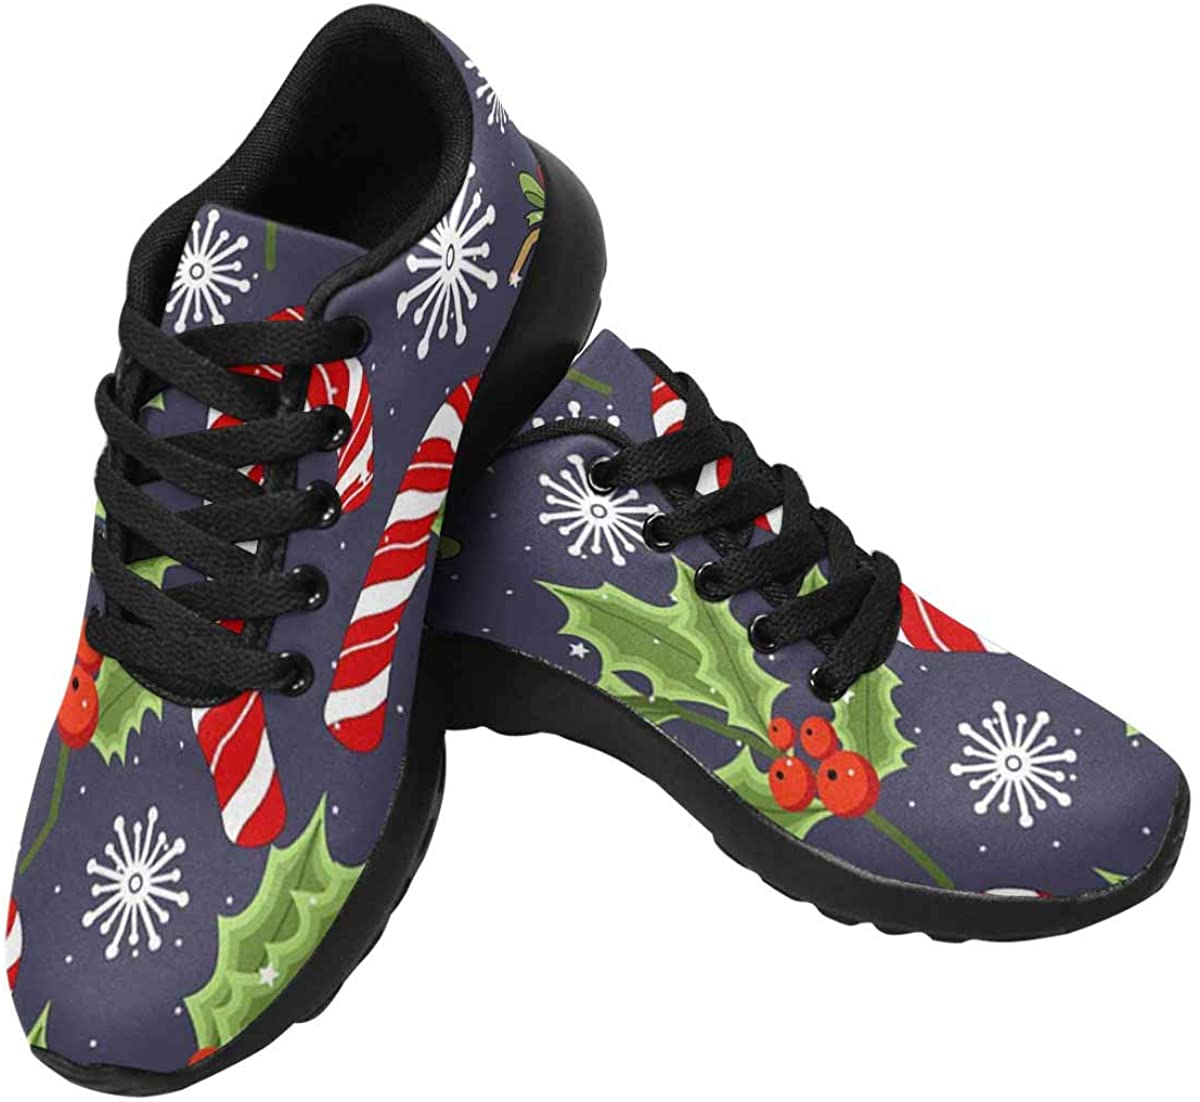 InterestPrint Women's Running Shoes Lightweight Non-Slip Breathable Walking Shoes Christmas Reindeer and Holiday Items